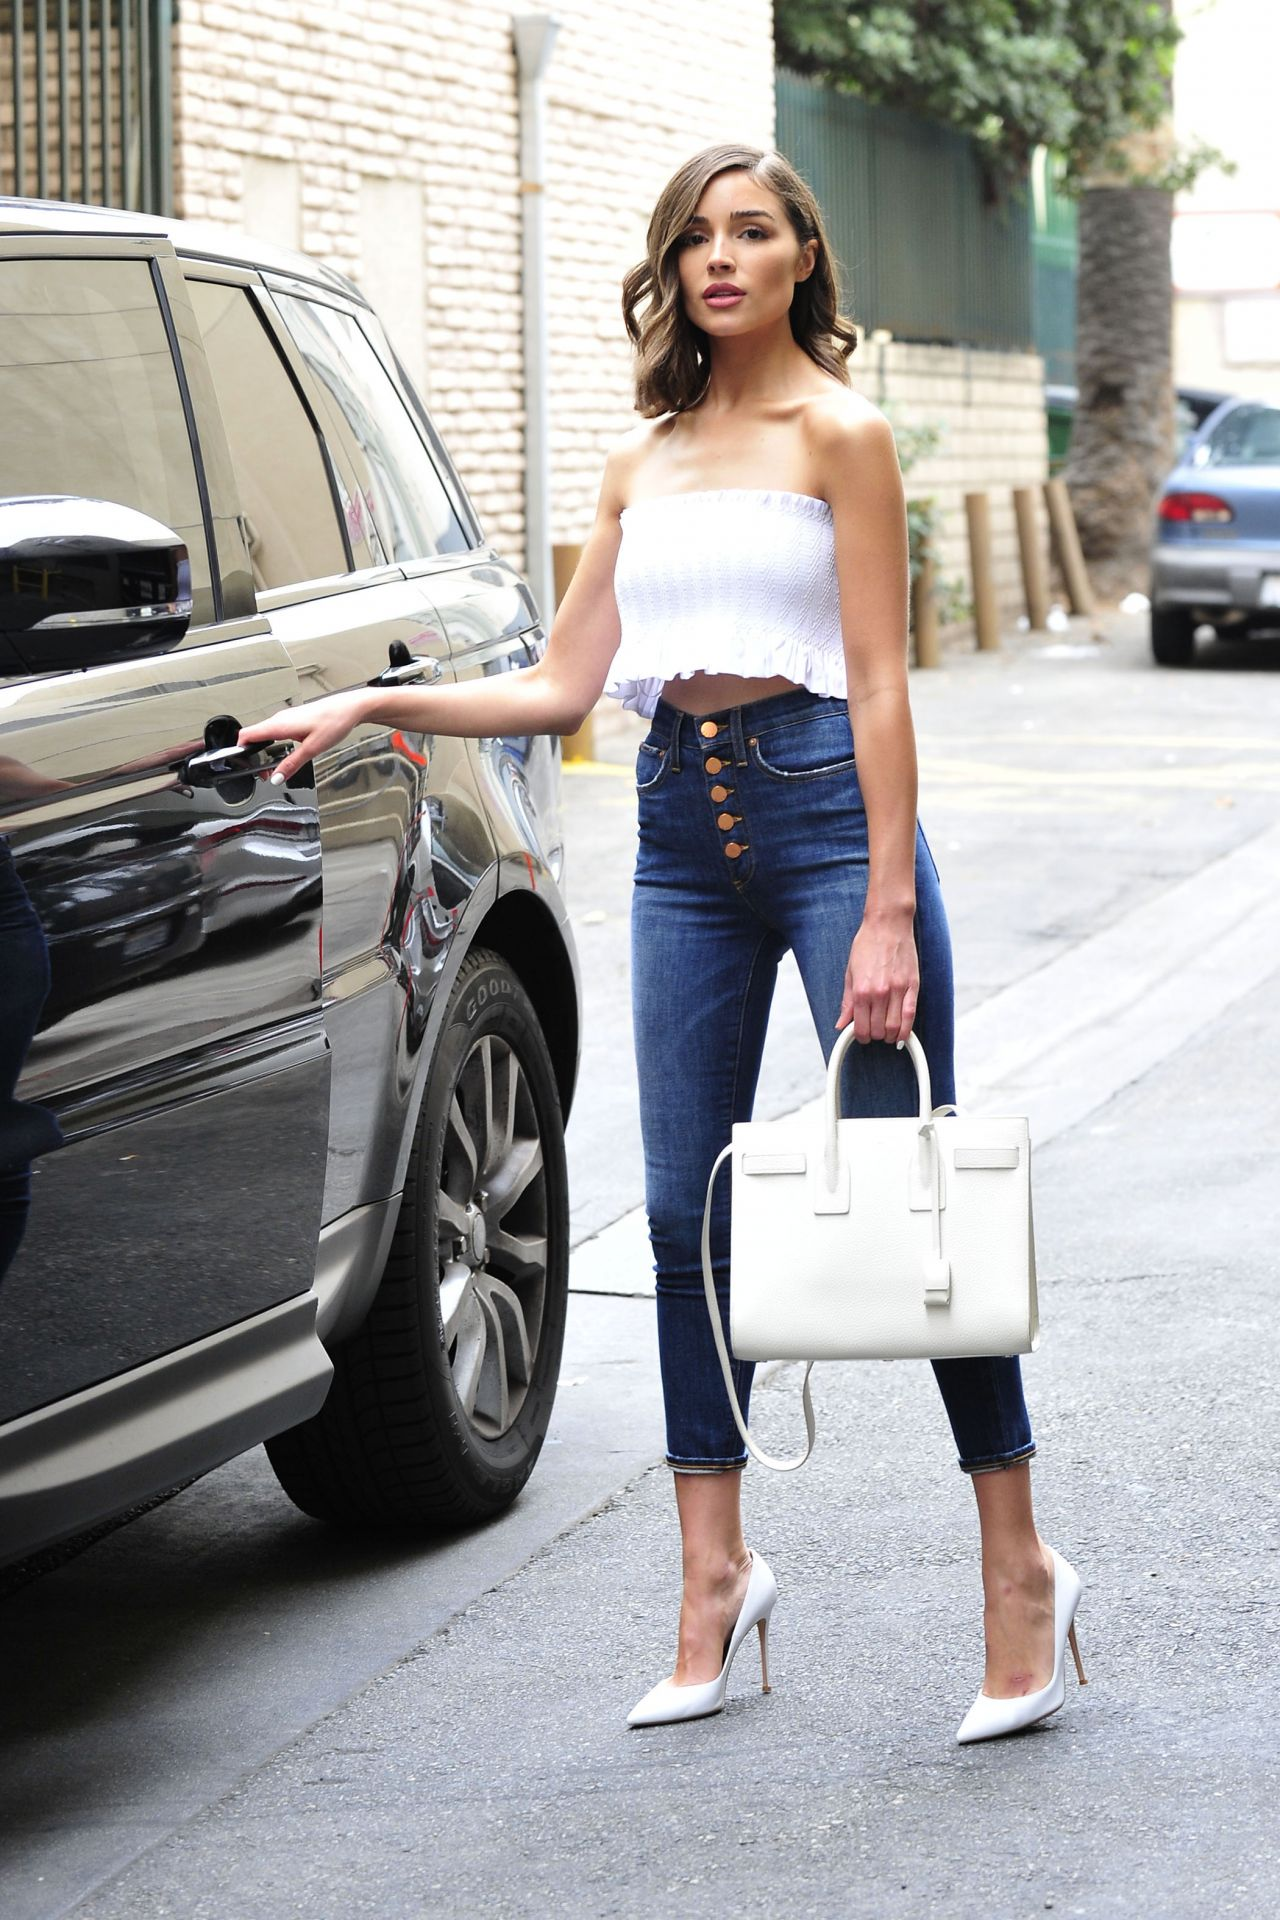 Olivia Culpo Street Fashion Out In Los Angeles 03 20 2018